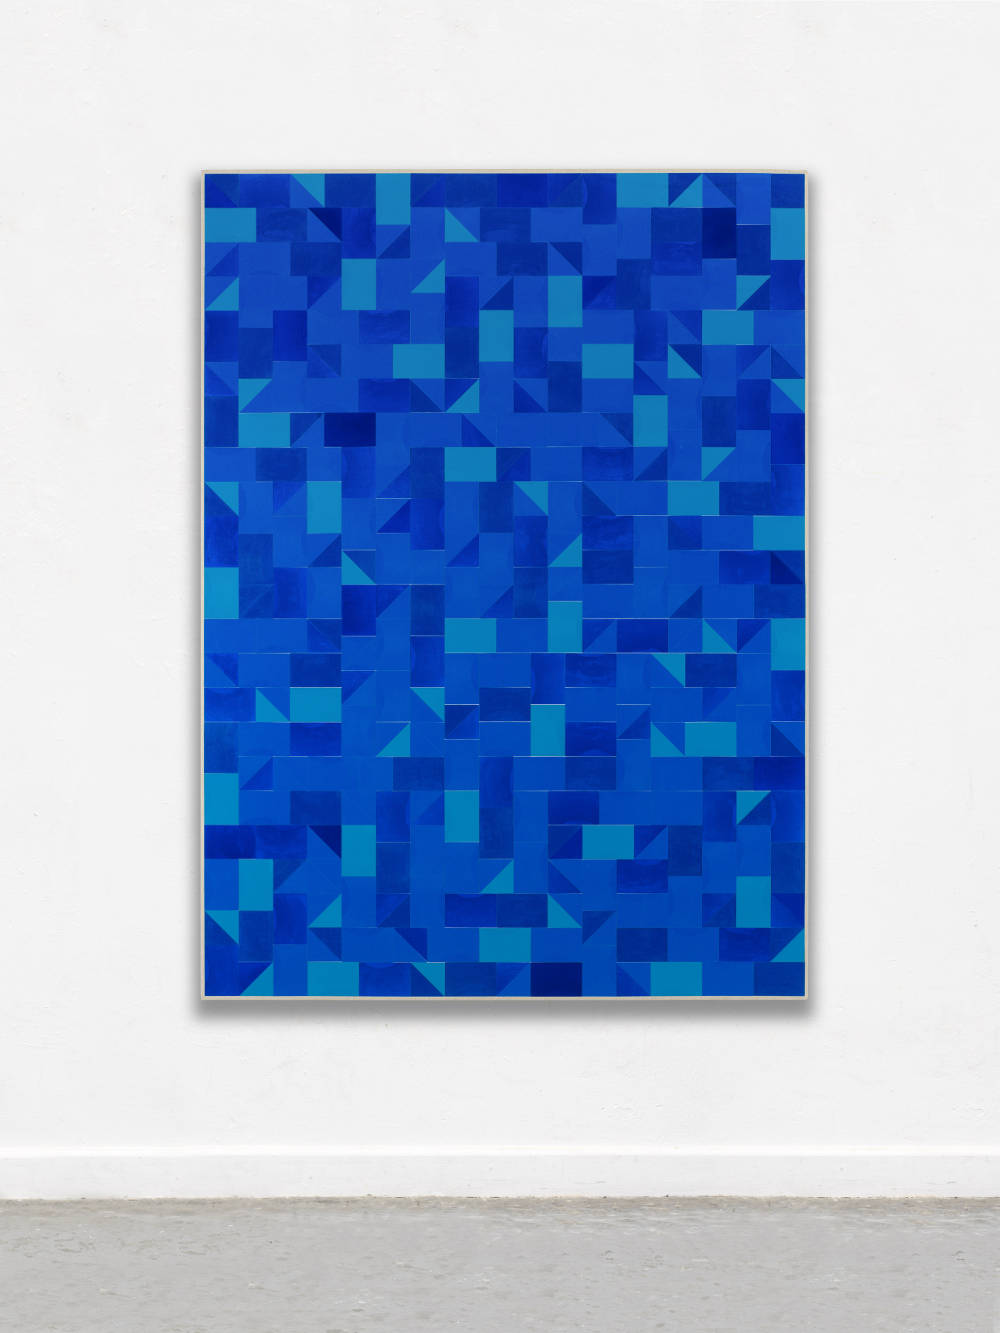 Gregor Hildebrandt, Ins Blaue, 2018. Cut vinyl records, acrylic, canvas, wood 192 x 140 cm, 75.6 x 55 in. Courtesy of the artist and Perrotin.